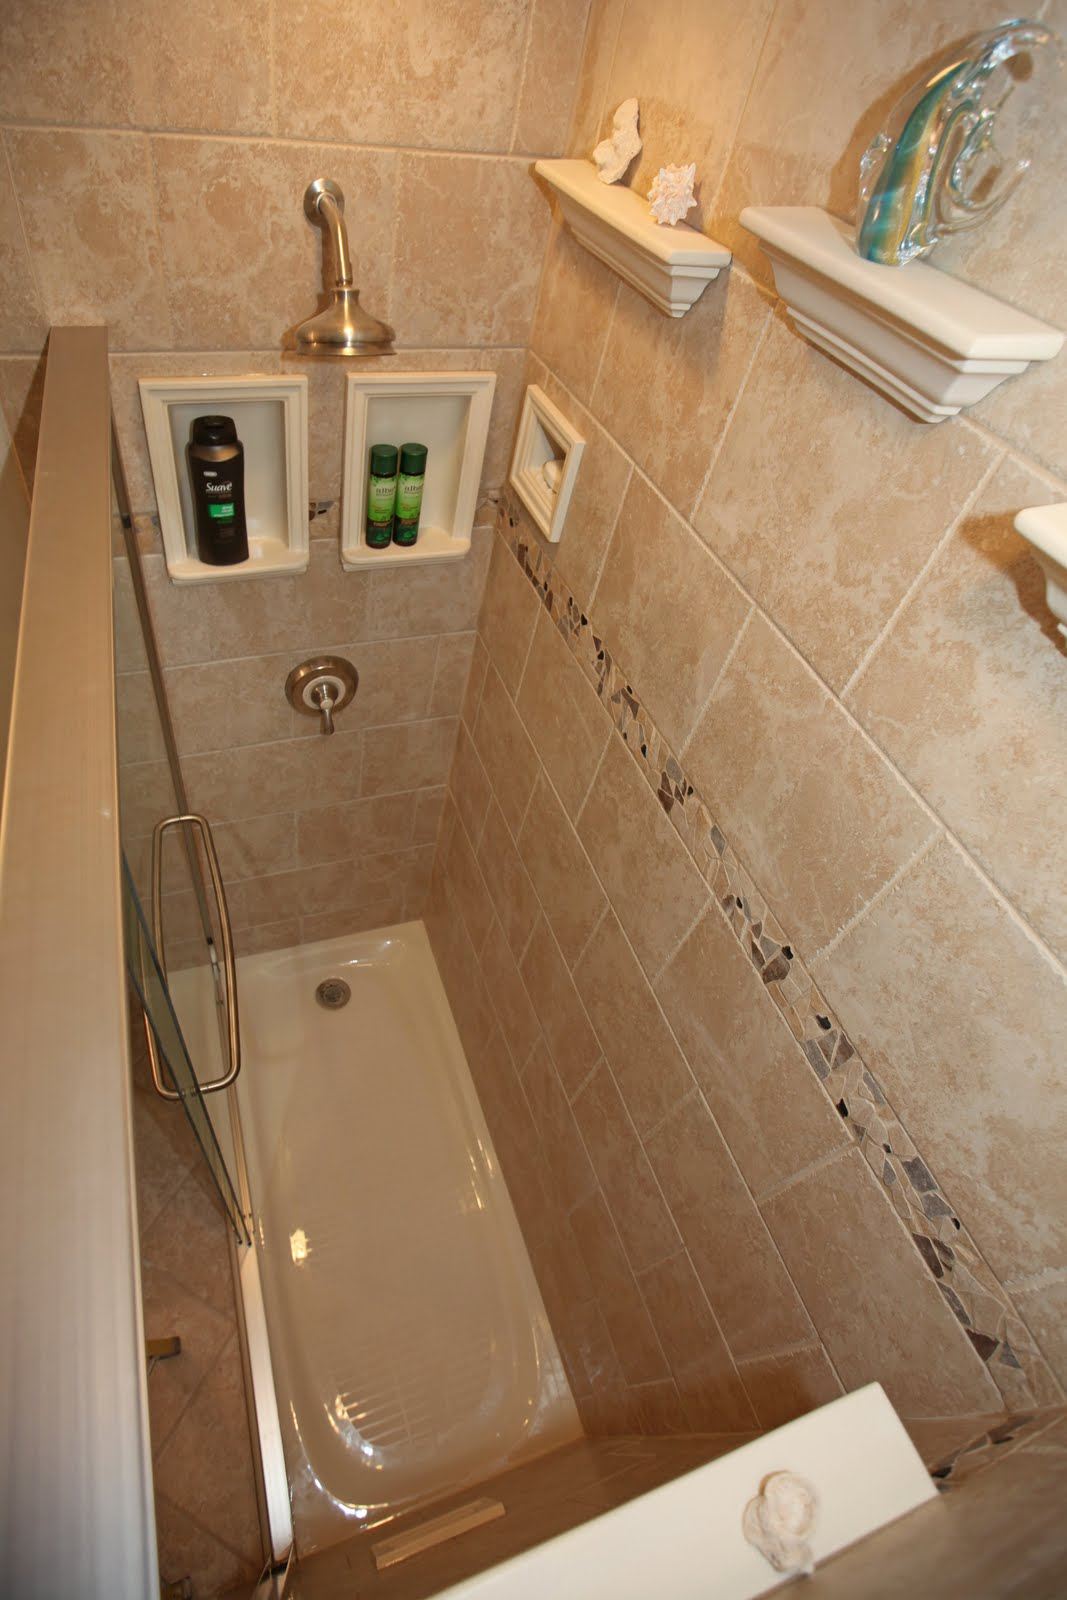 Bathroom remodeling design ideas tile shower niches Bathroom tile decorating ideas